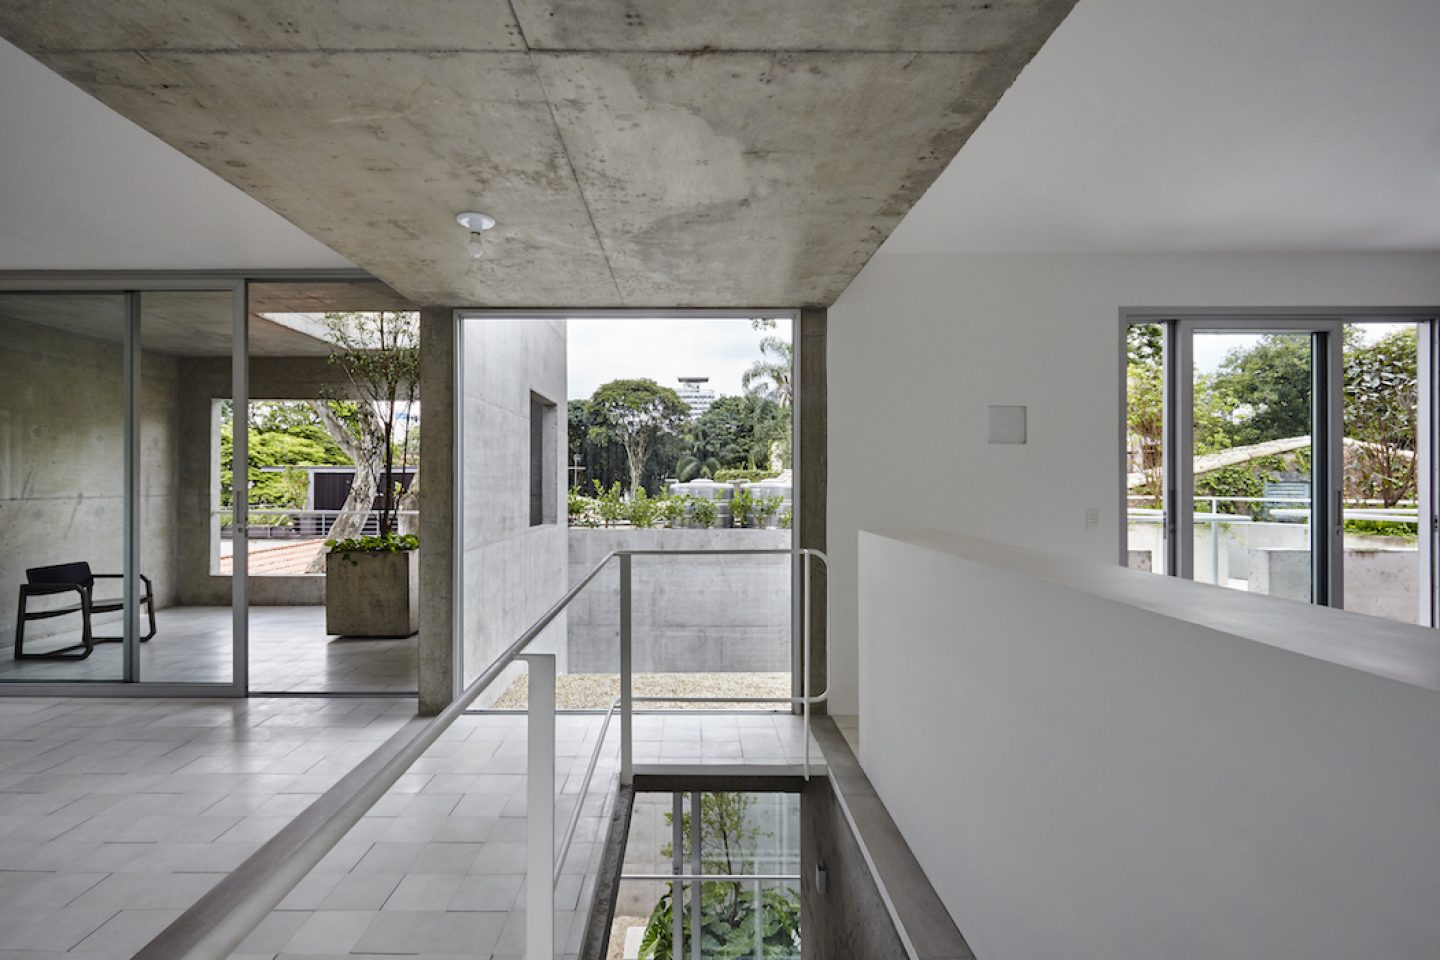 BN_HOUSE_Architecture080